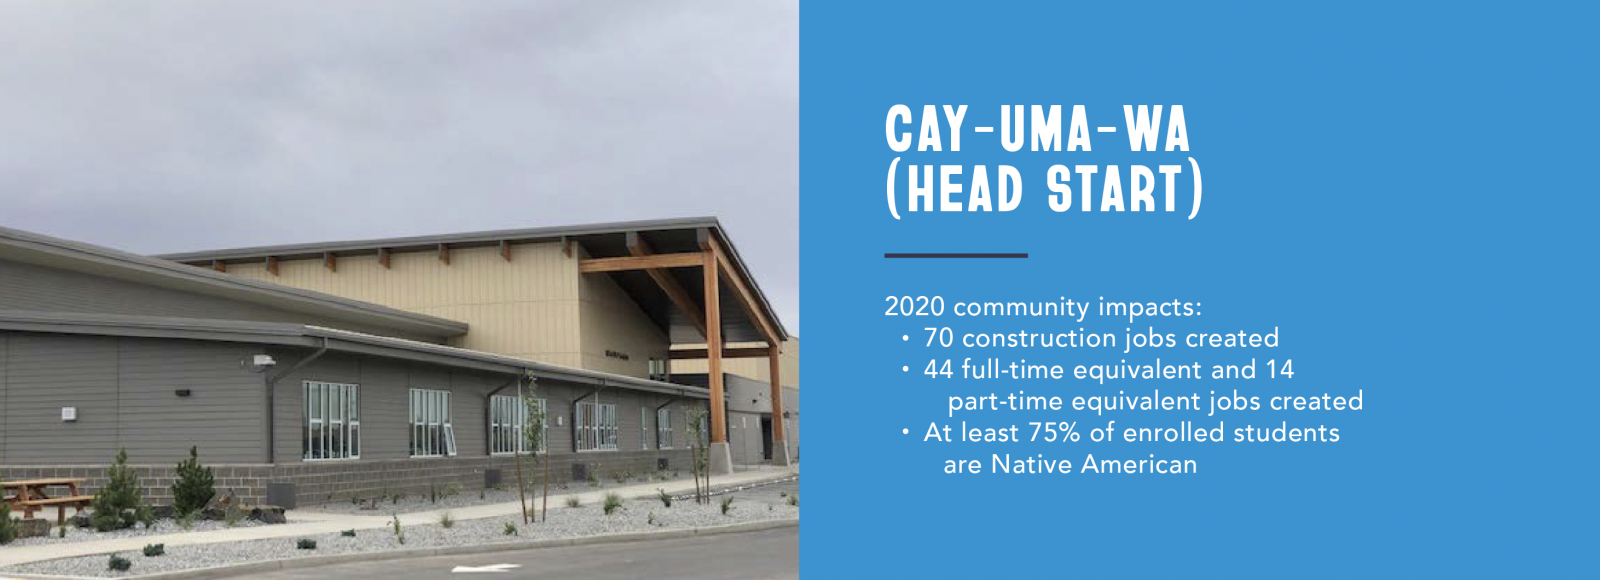 A photo placed next to a graphic of white text on a blue background. The photo shows the exterior of a modern high school building that has gray and beige paint. The white text reads: Cay-uma-wa (Head Start) / 2020 community impacts: / 70 construction jobs created / 44 full-time equivalent and 14 part-time equivalent jobs created / At least 75% of enrolled students are Native American